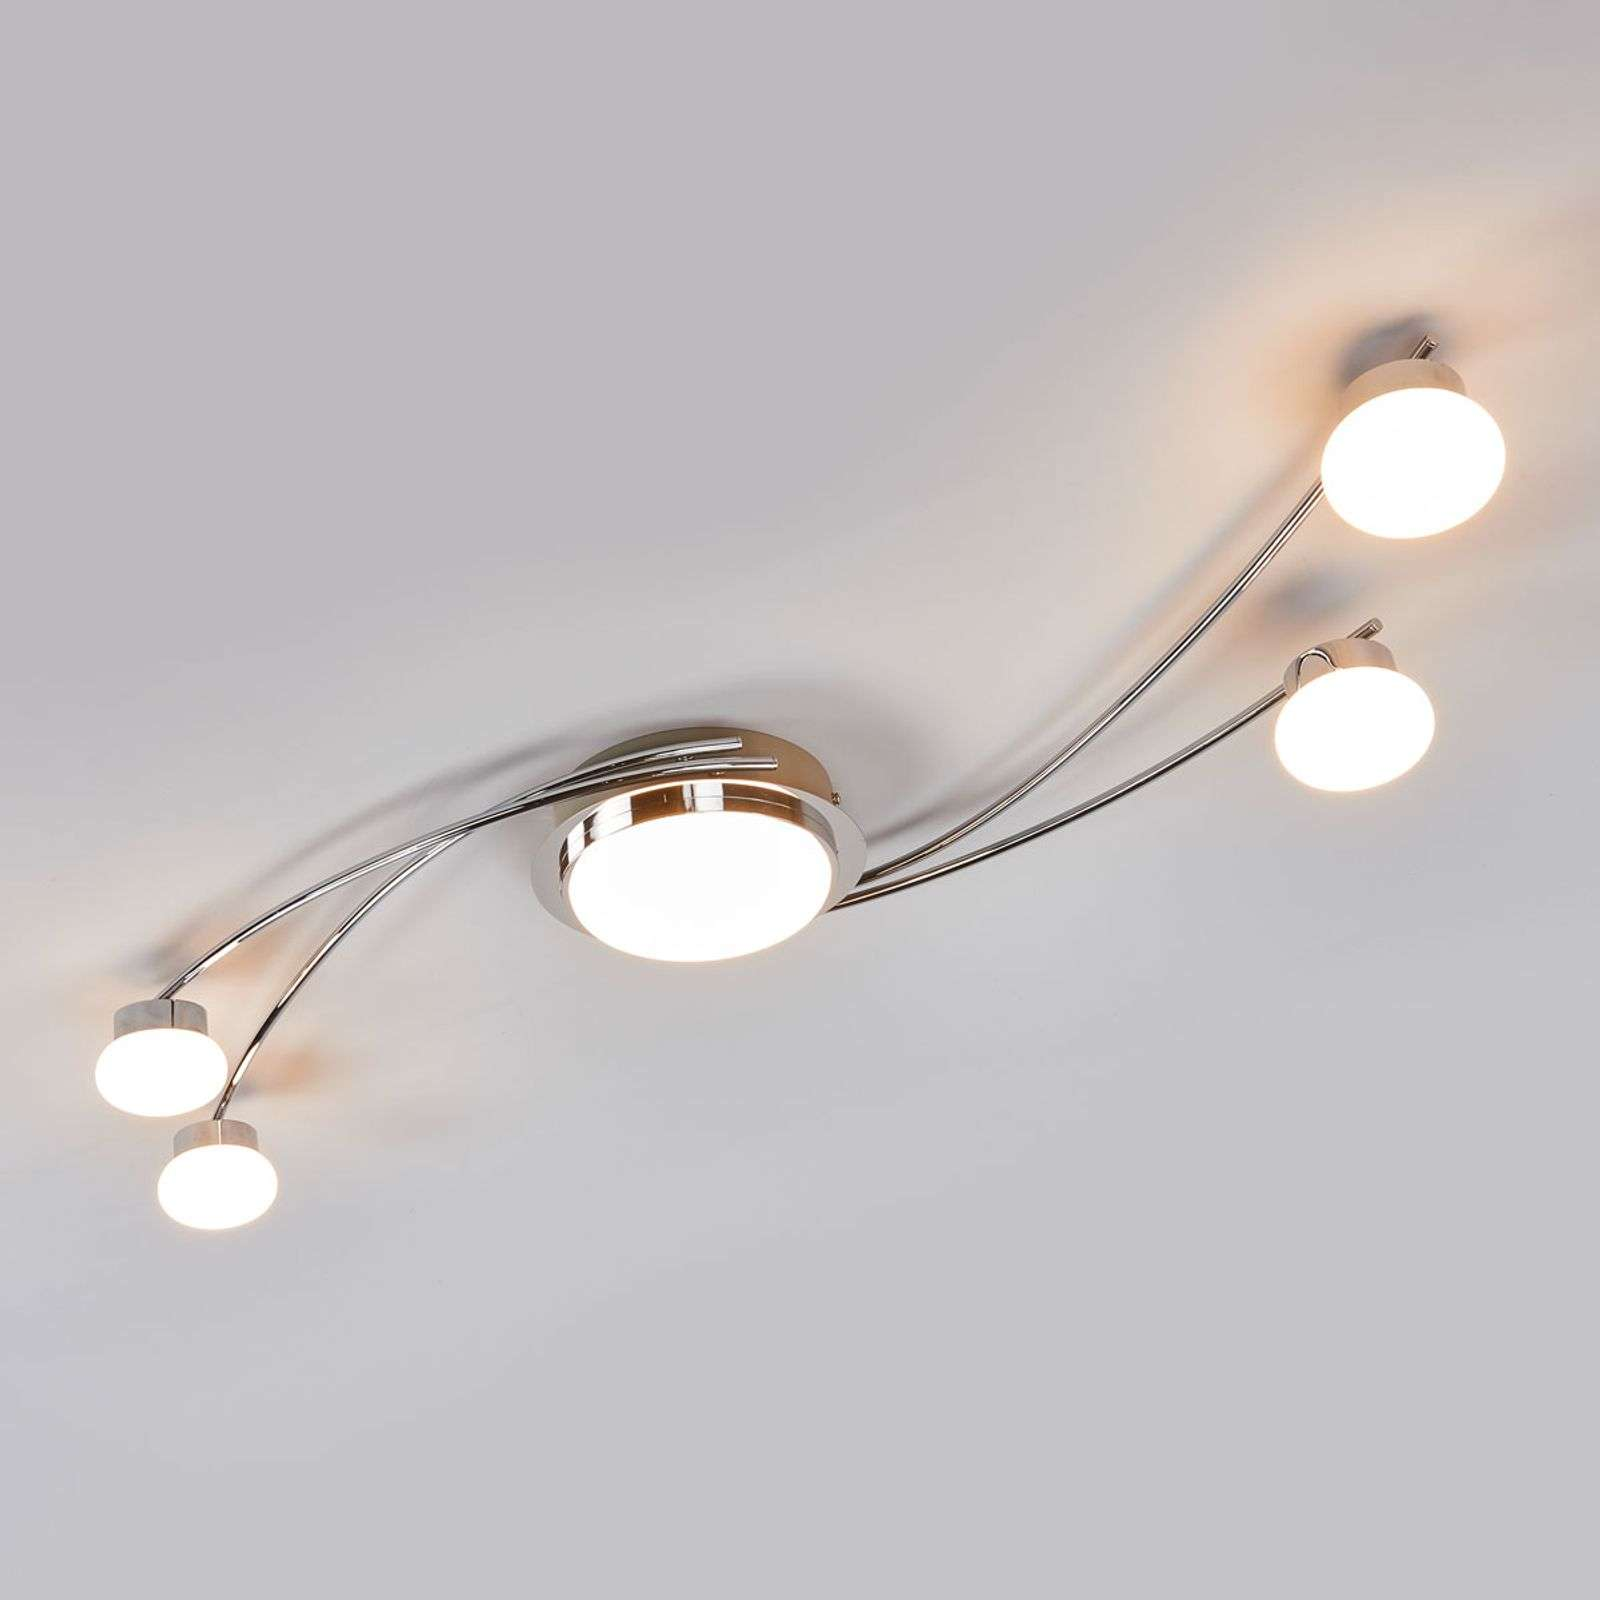 Vitus - Led plafondlamp in chroom